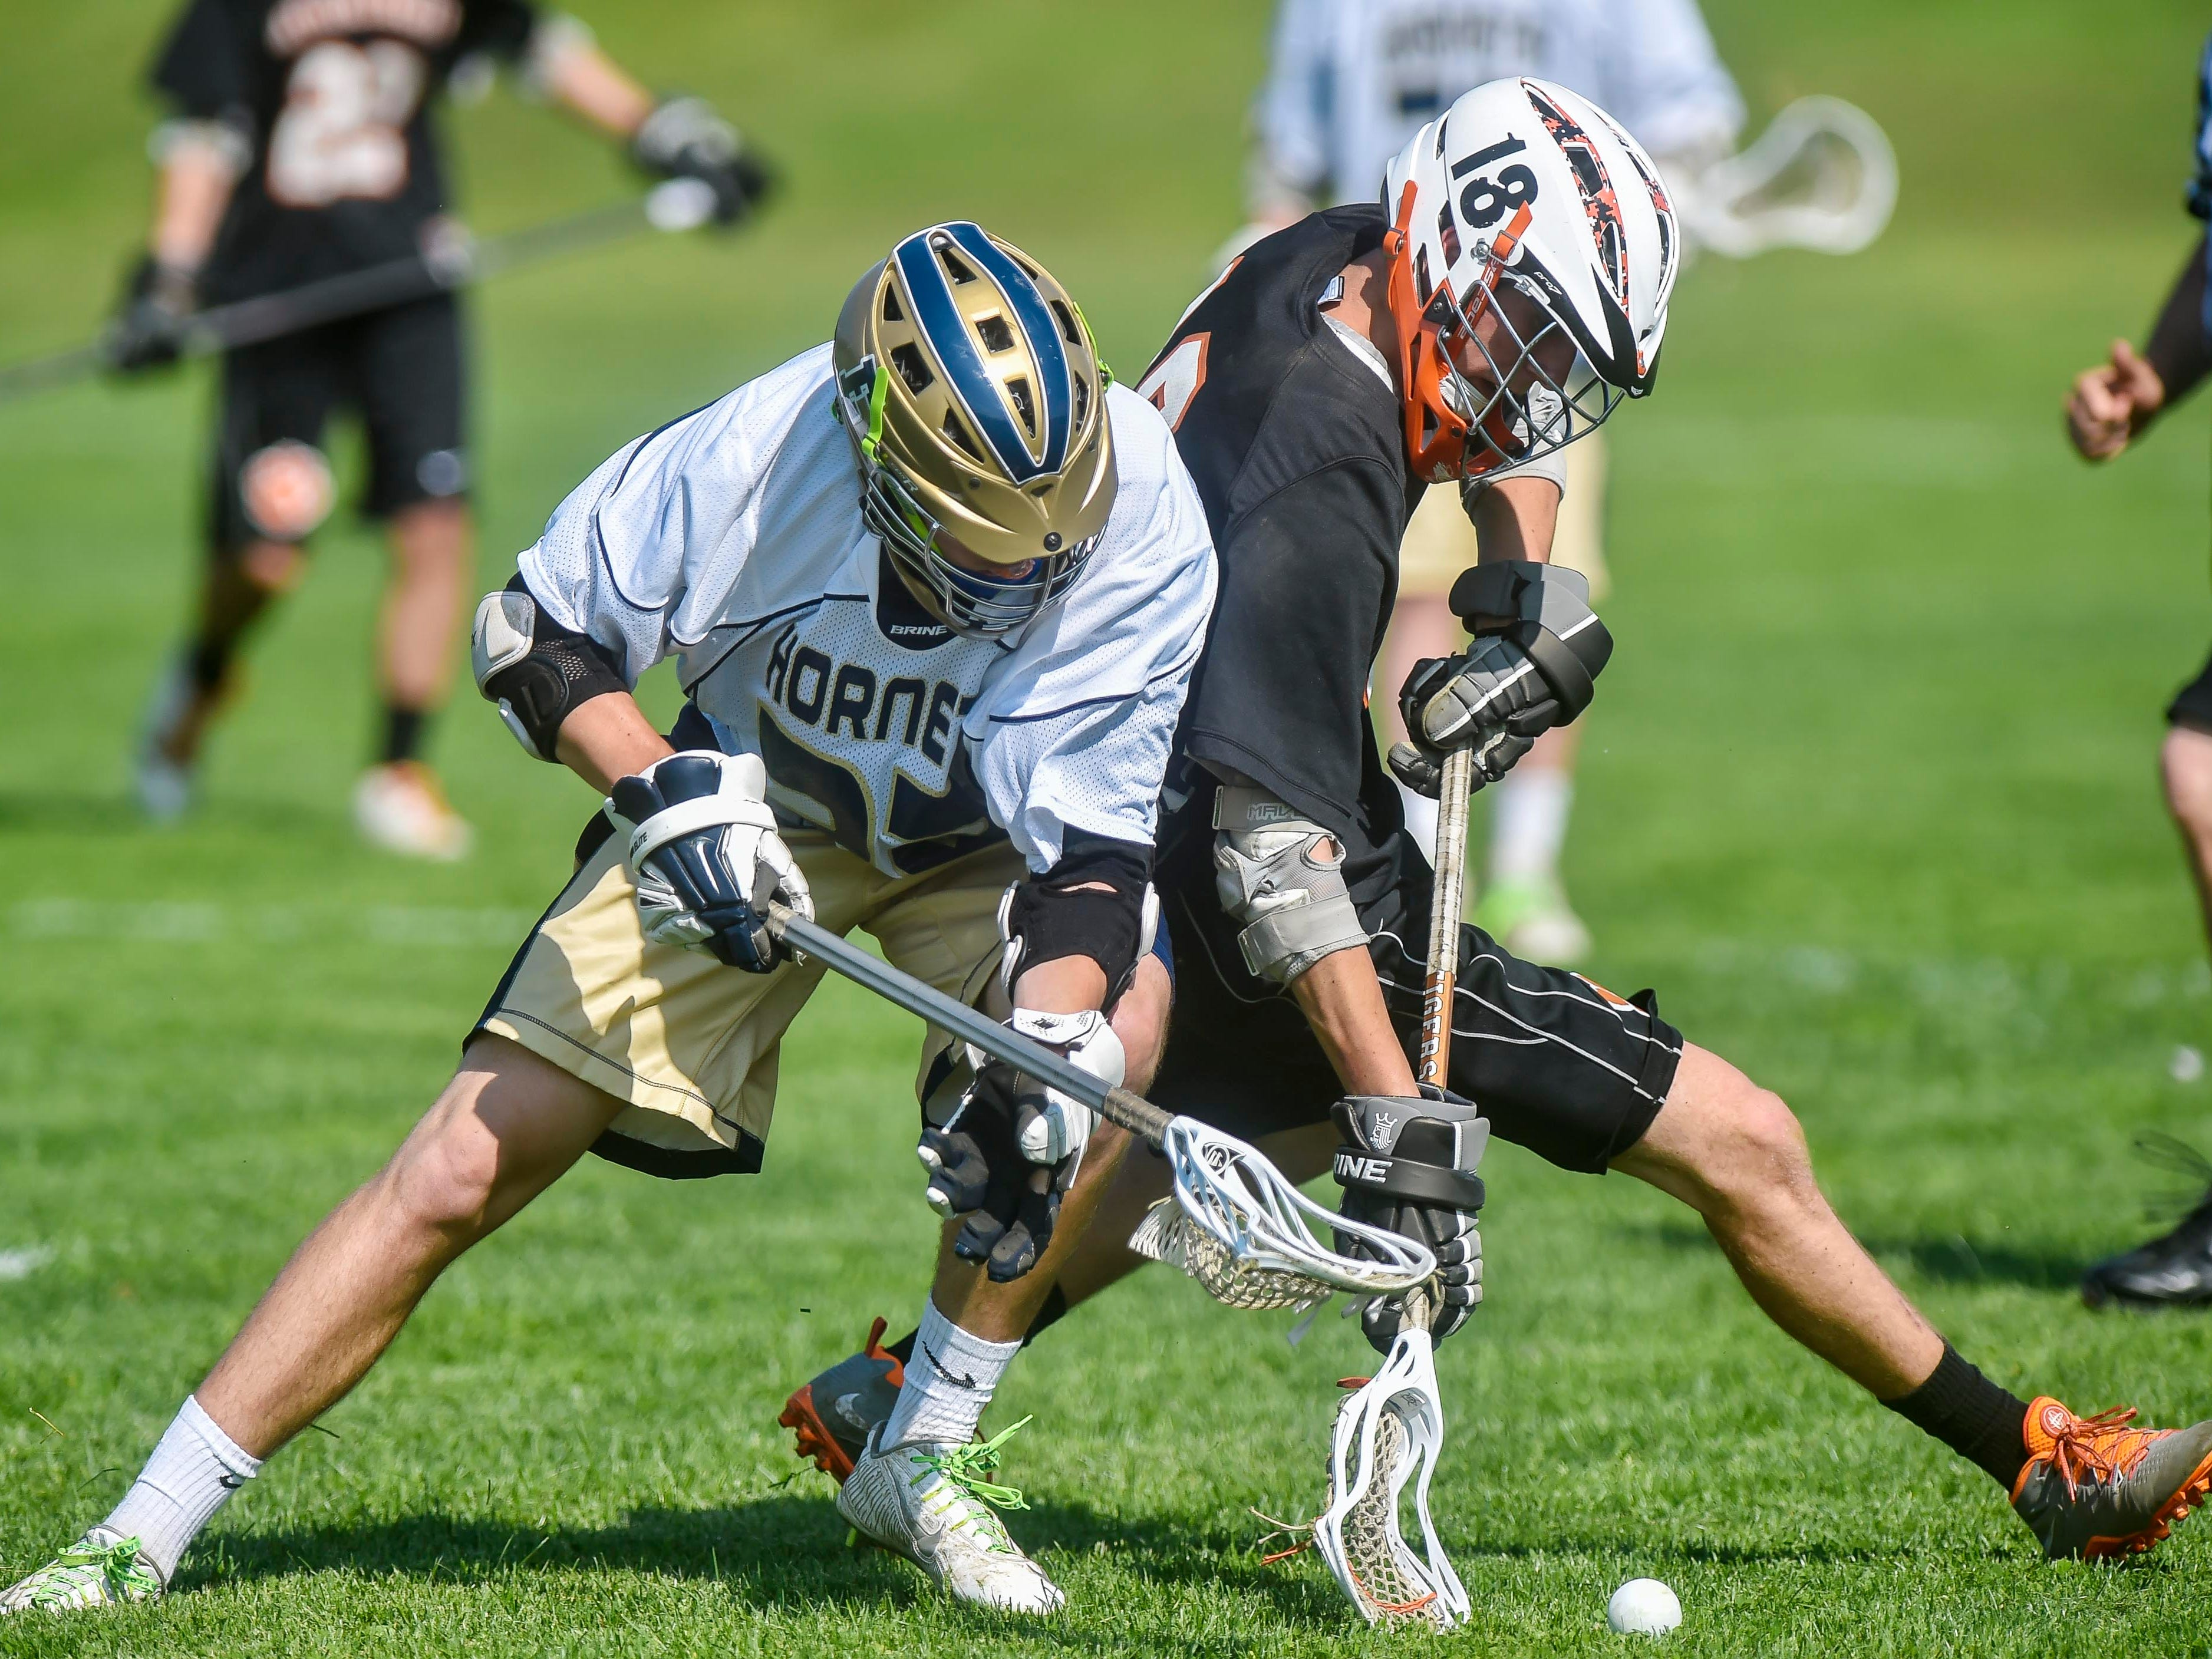 Essex's Noah Ferris, left, and Middlebury's Andrew Gleason dig after the ball during Tuesday afternoon's game in Essex.